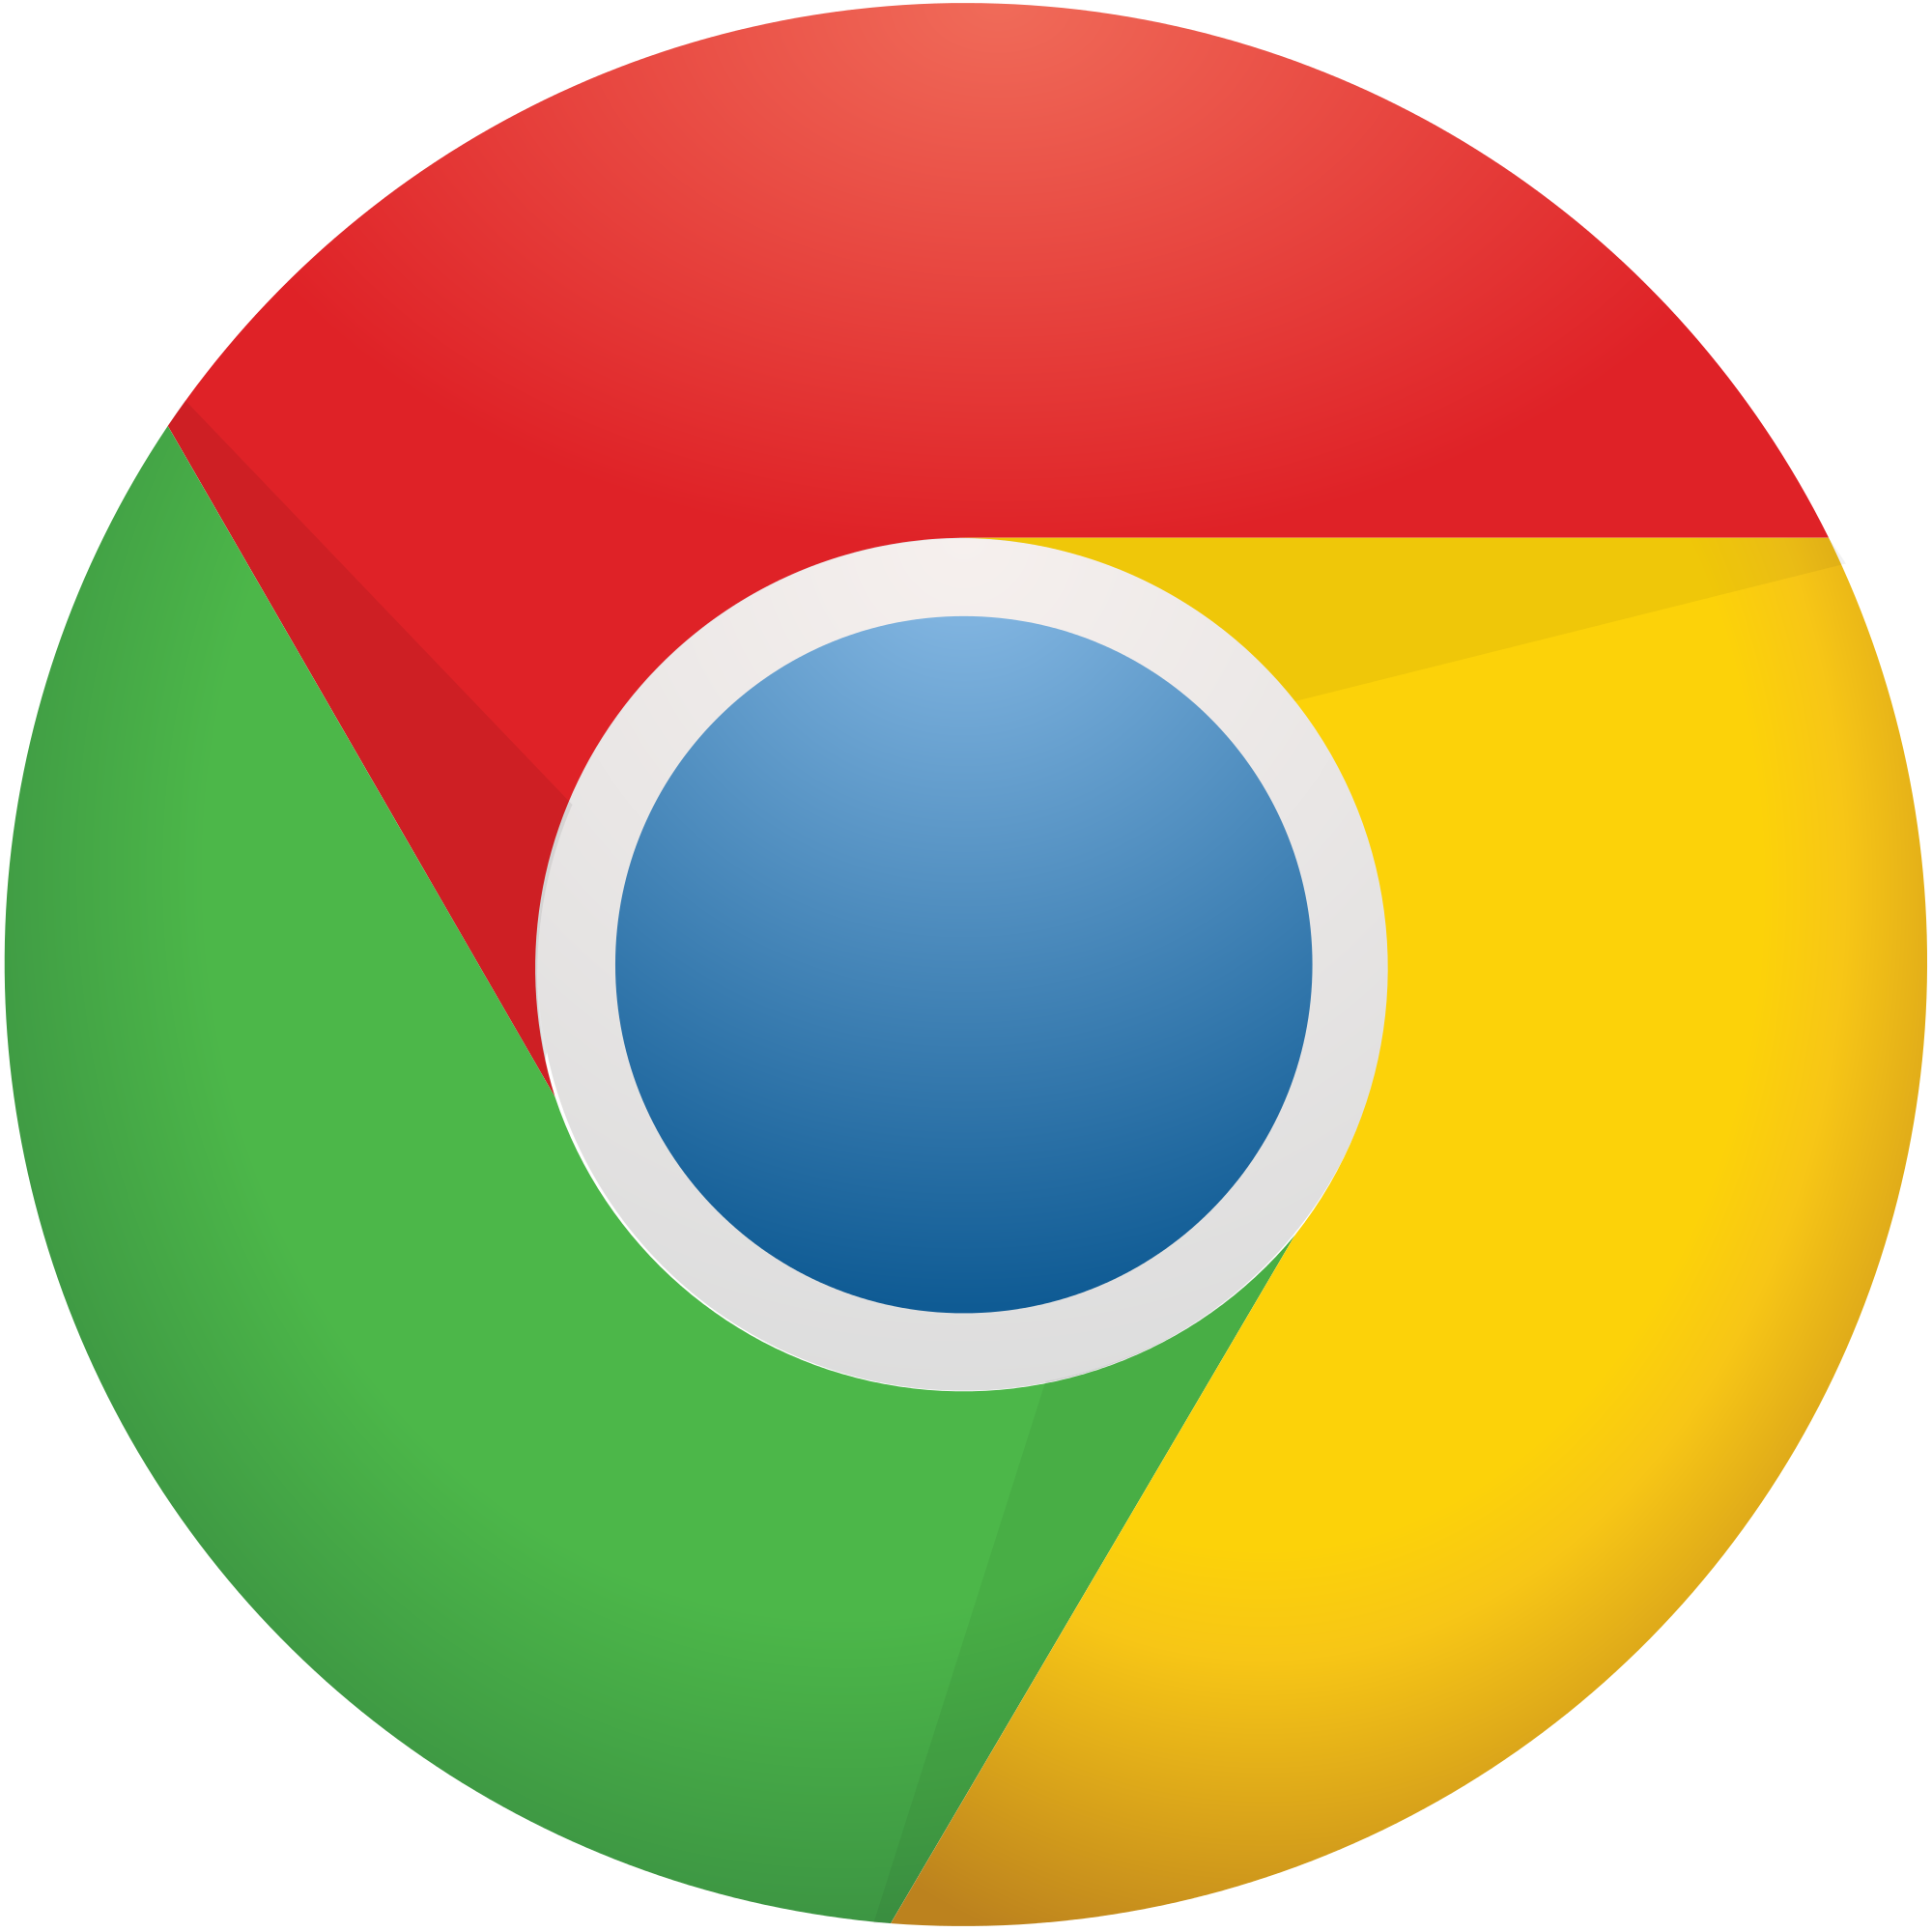 image depicting the google chrome icon